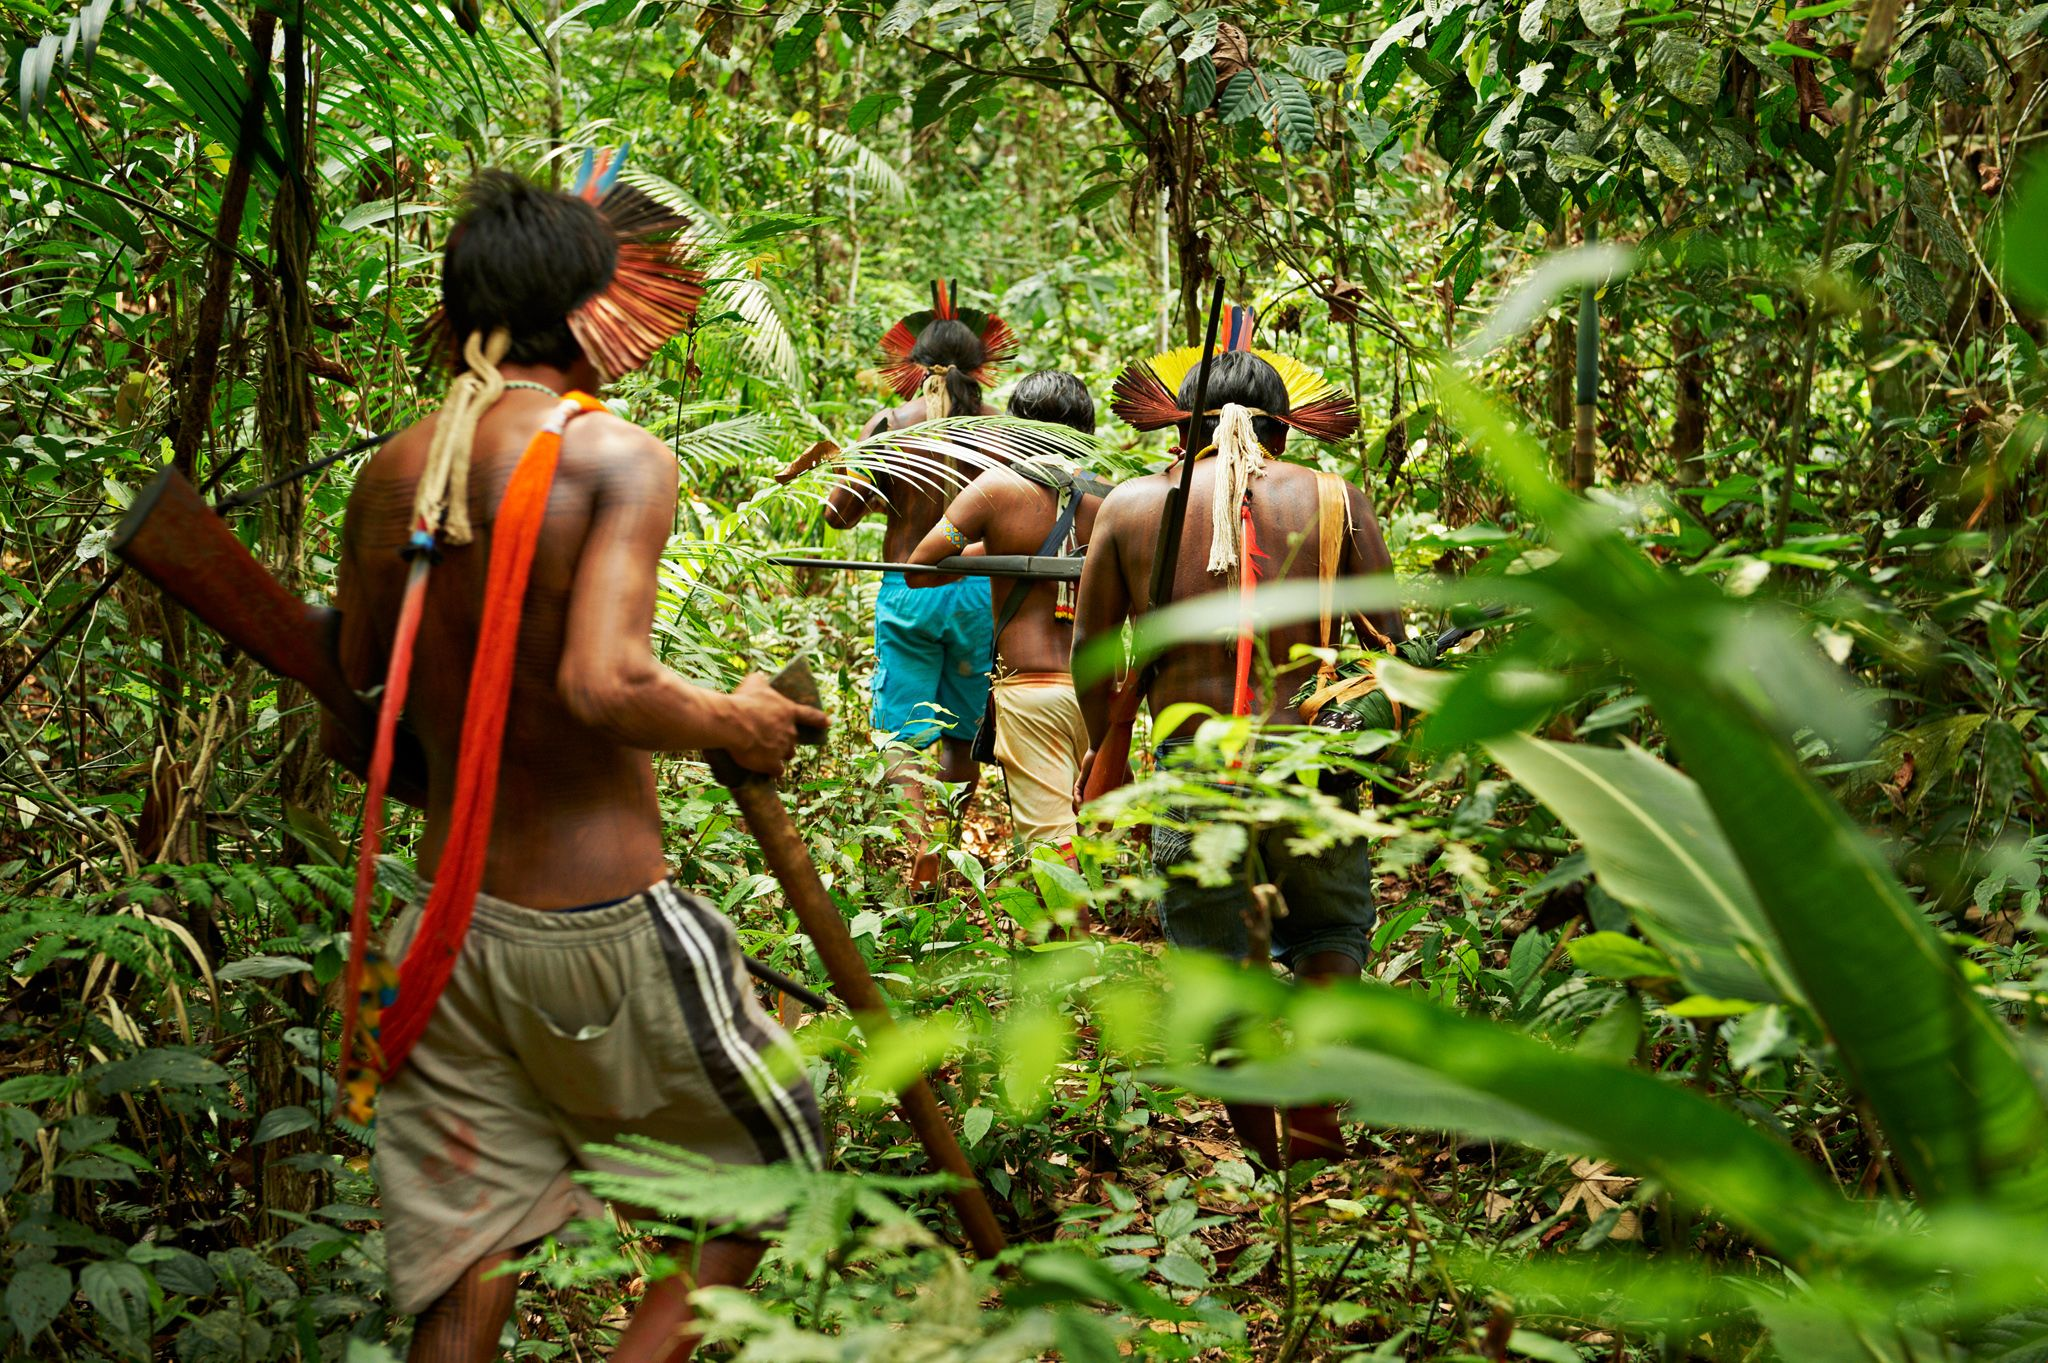 Rain Forest Warriors: How Indigenous Tribes Protect the Amazon | Rainforest, Amazon rainforest, Indigenous tribes